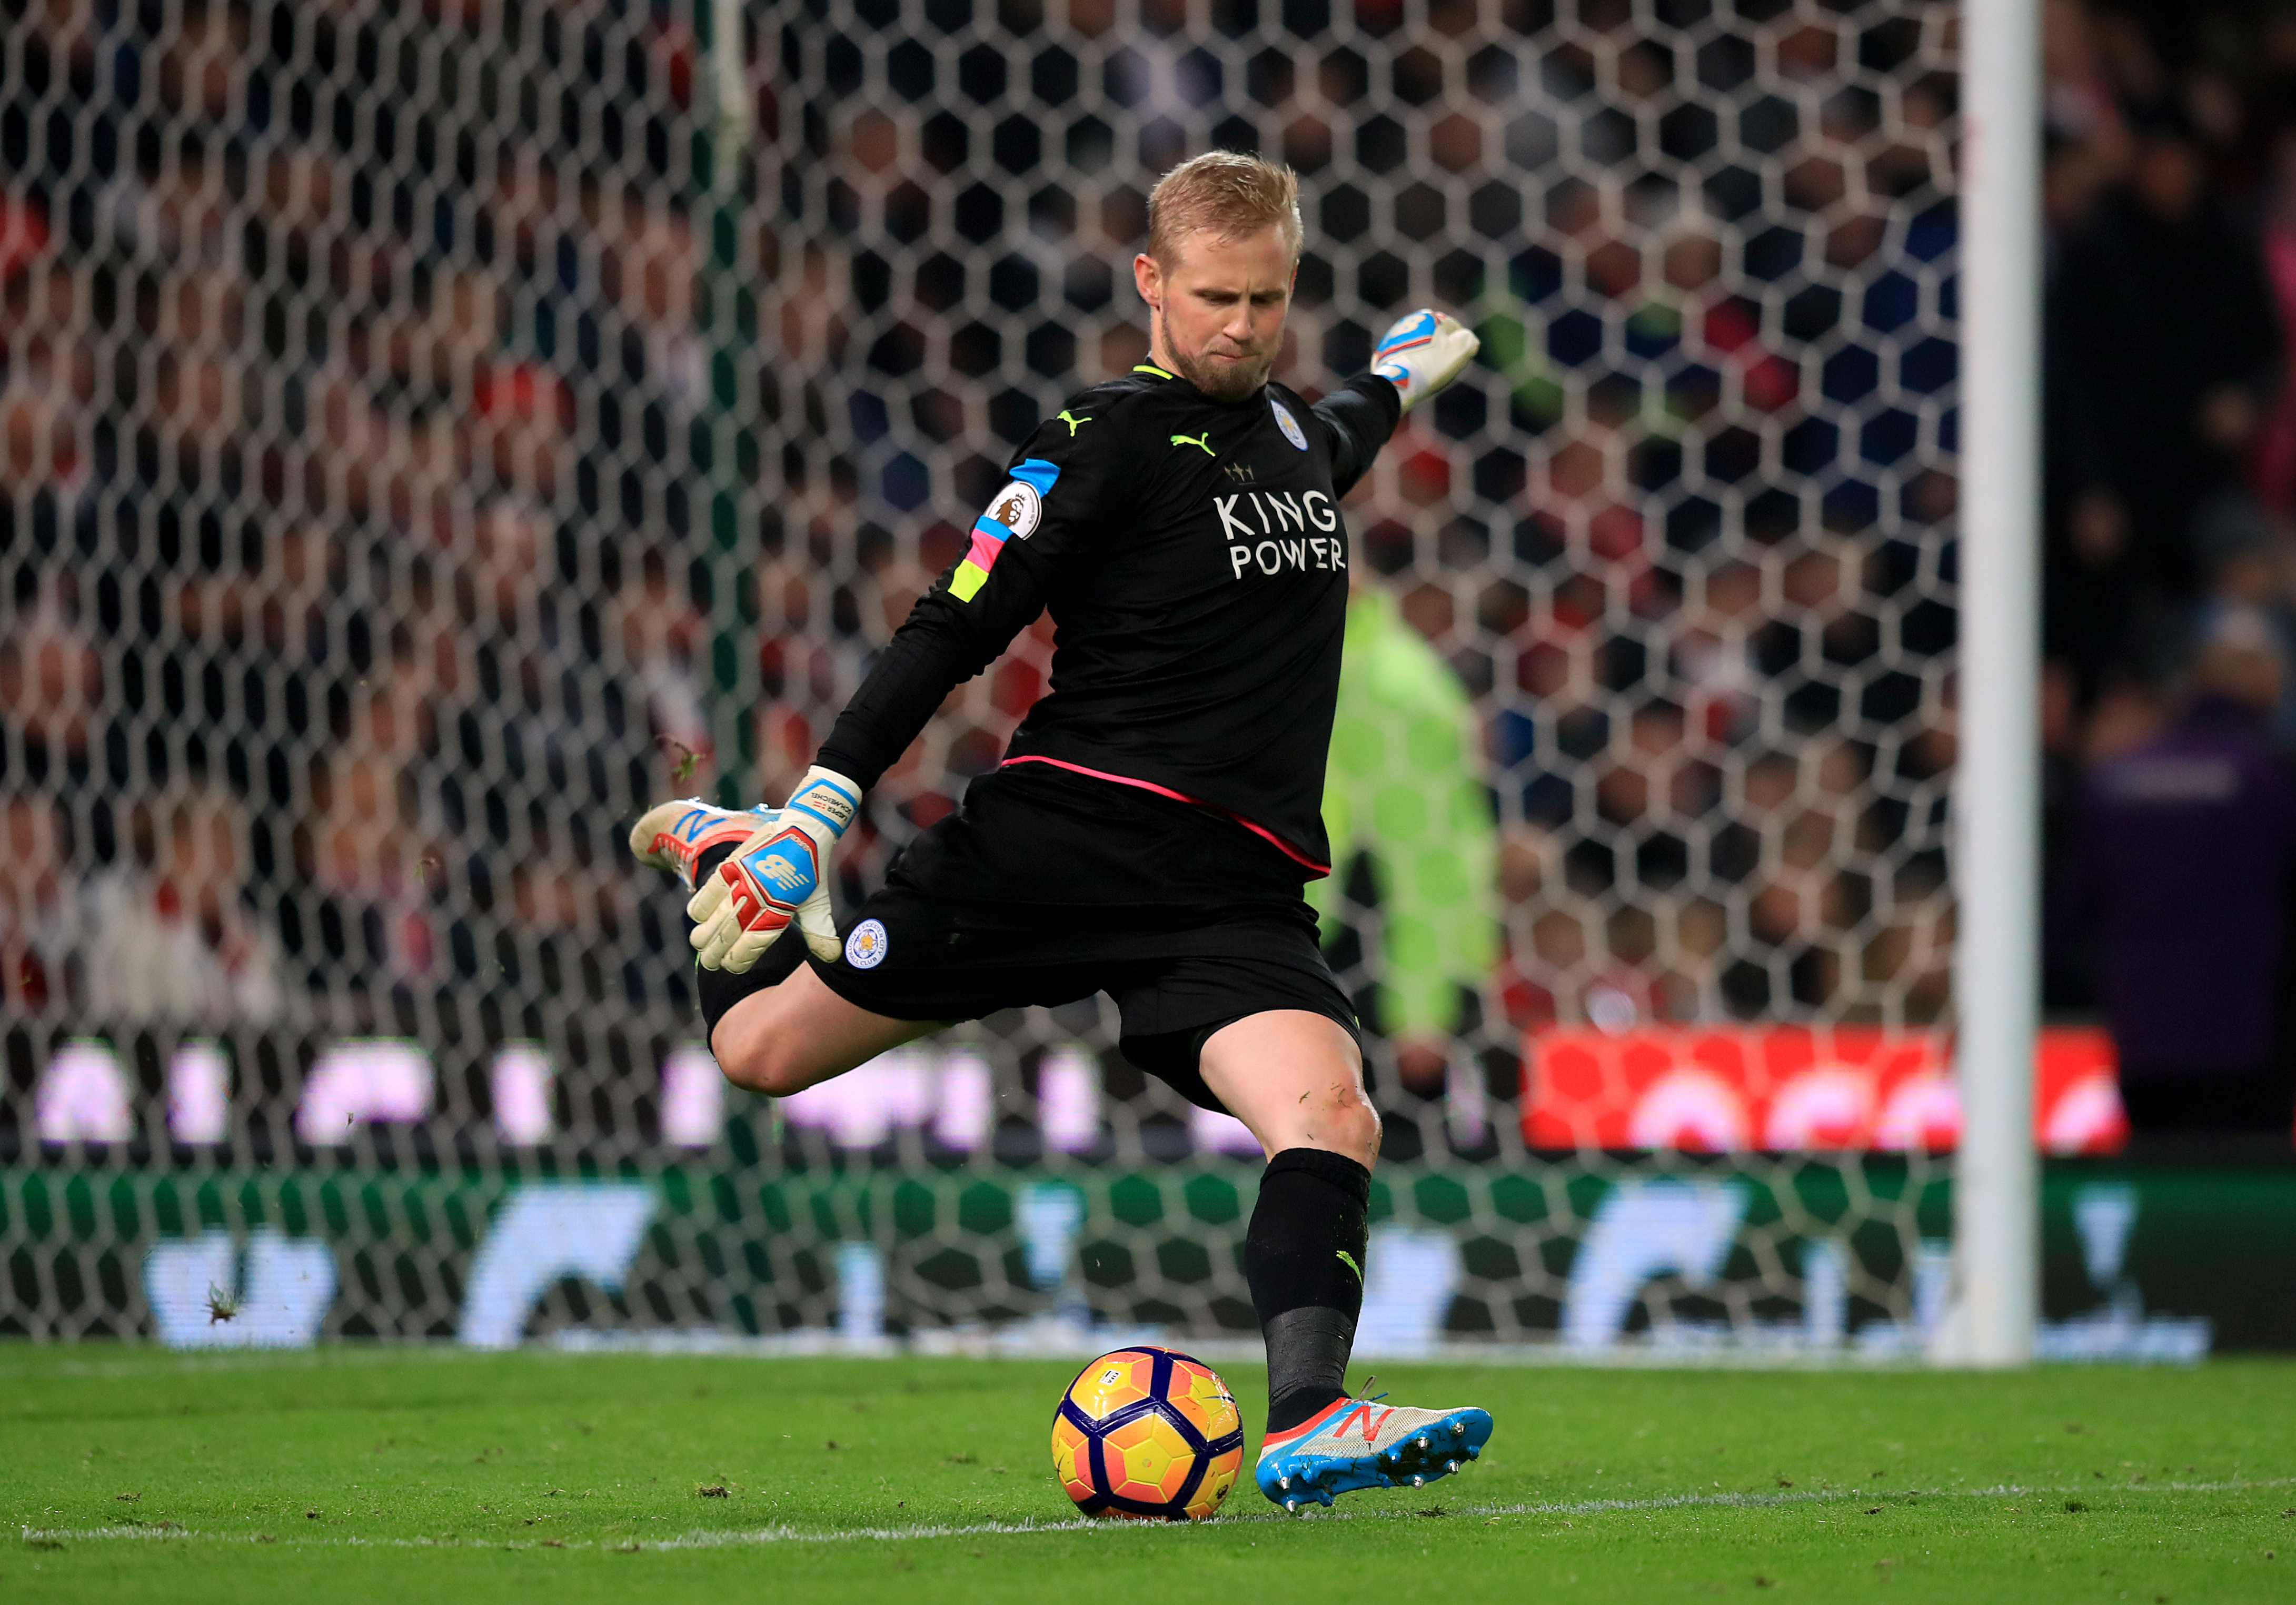 Would Schmeichel be better for Manchester City over Bravo